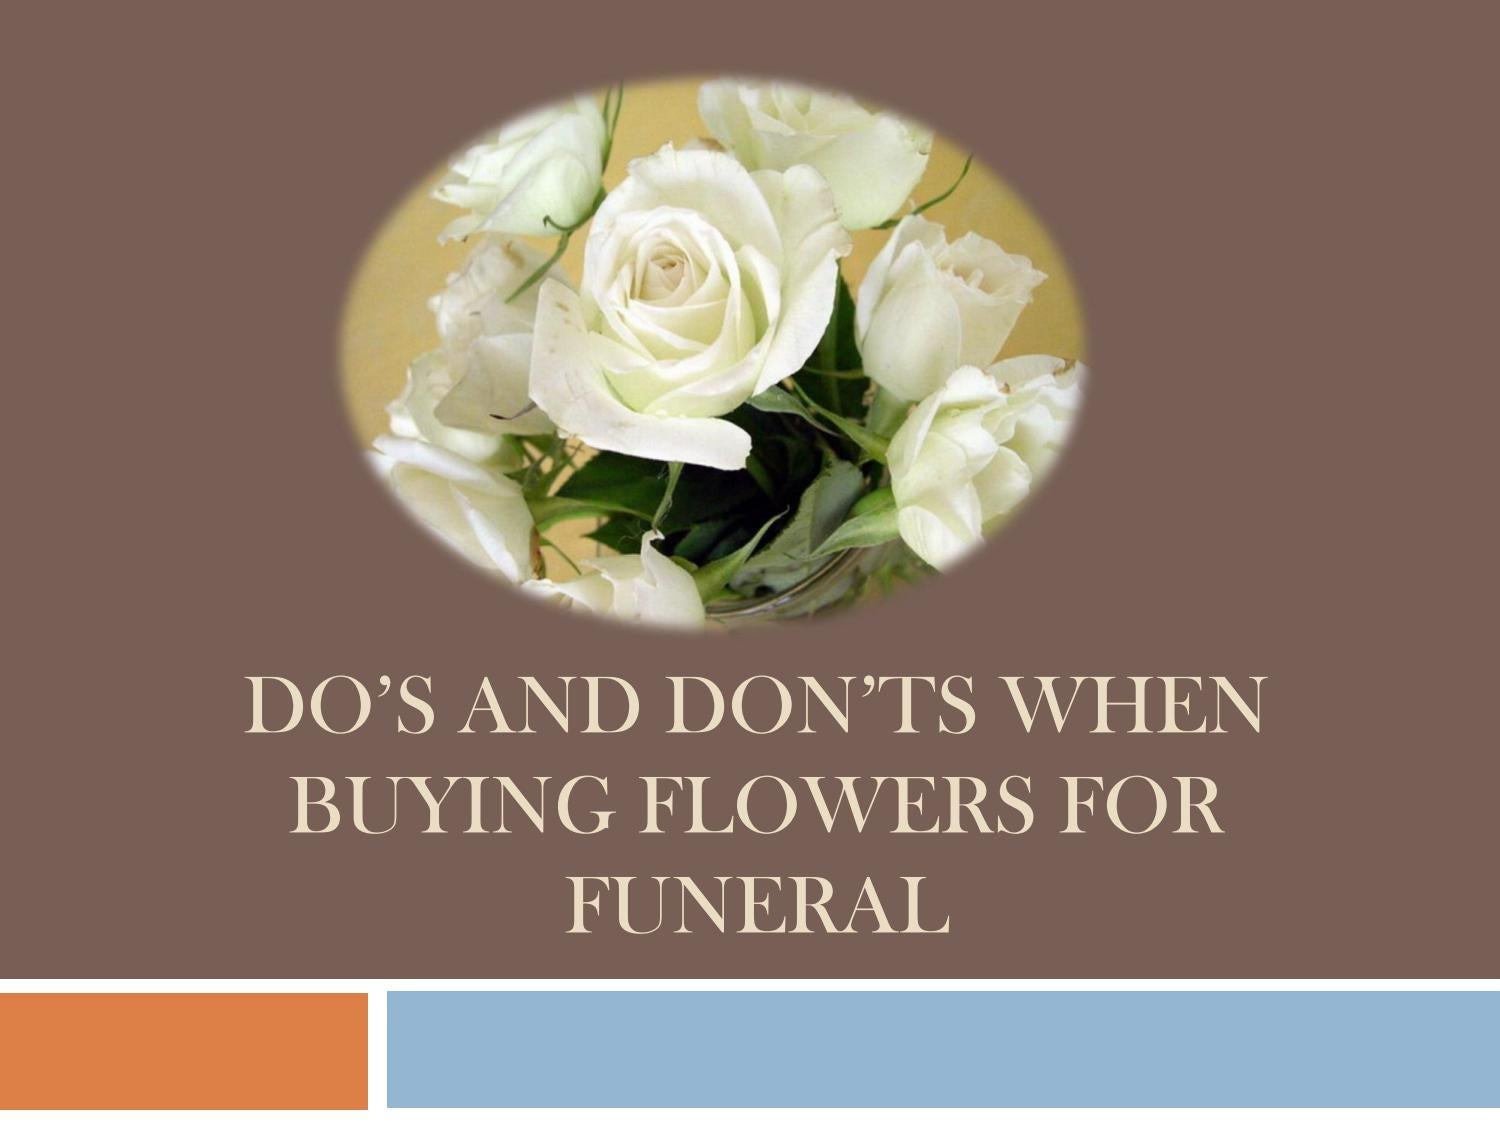 Dos And Donts When Buying Flowers For Funeral By Funeral Flowers